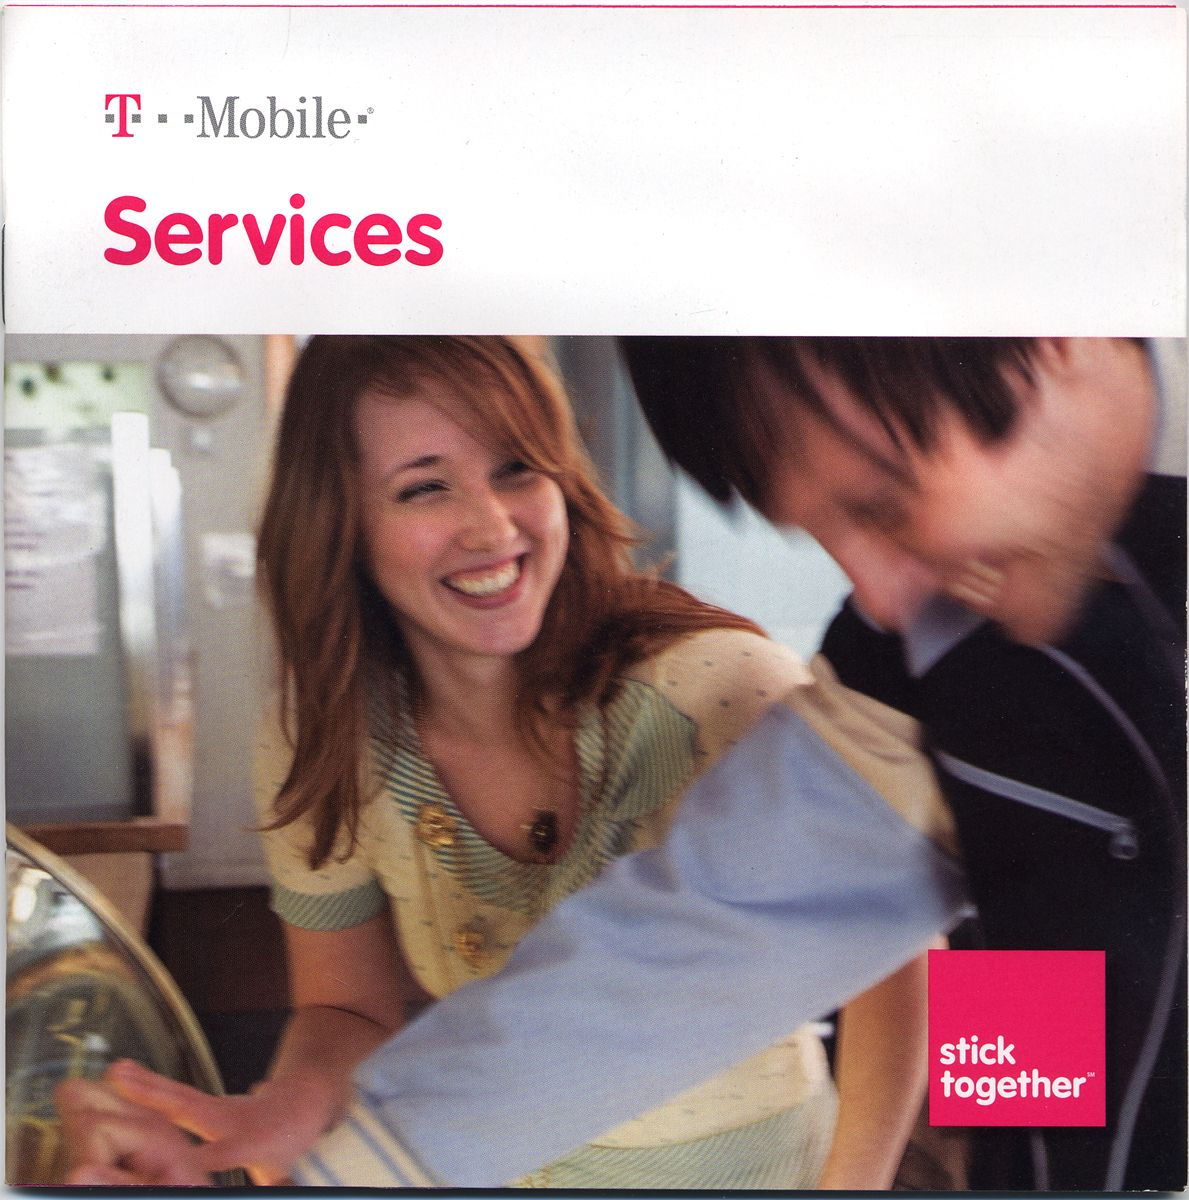 1tmobile431_copy